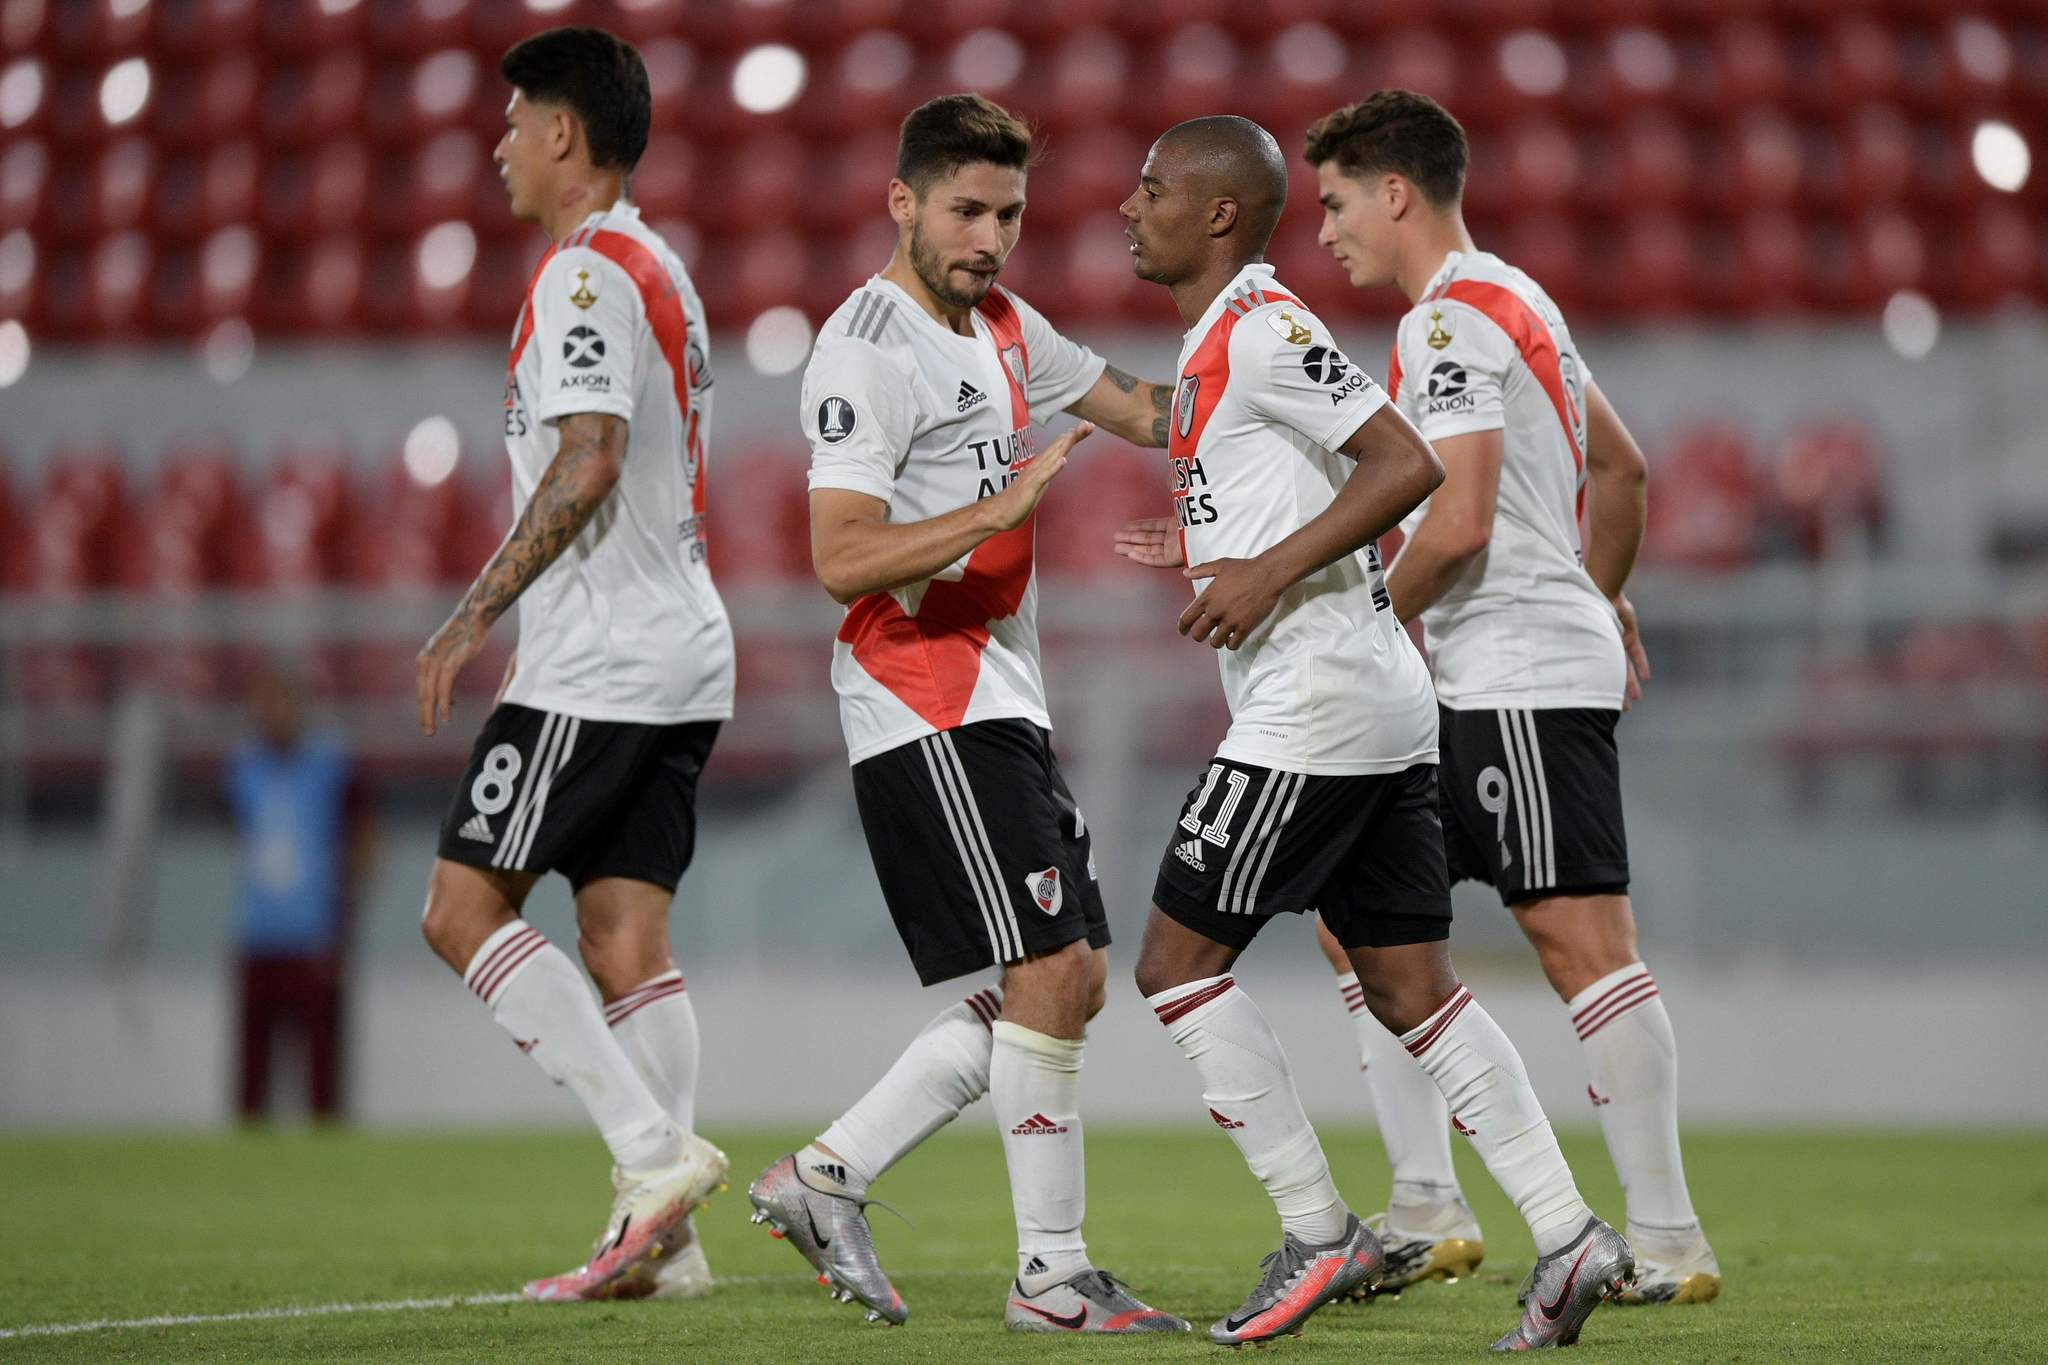 Argentinas lt;HIT gt;River lt;/HIT gt; lt;HIT gt;Plate lt;/HIT gt; Uruguayan Nicolas De La Cruz (2nd R) celebrates with teammates after scoring against Brazils Athletico Paranaense during the closed-door Copa Libertadores round before the quarterfinals football match, at the Libertadores de America stadium in Avellaneda, Buenos Aires, on December 1, 2020. (Photo by Juan Mabromata / POOL / AFP)